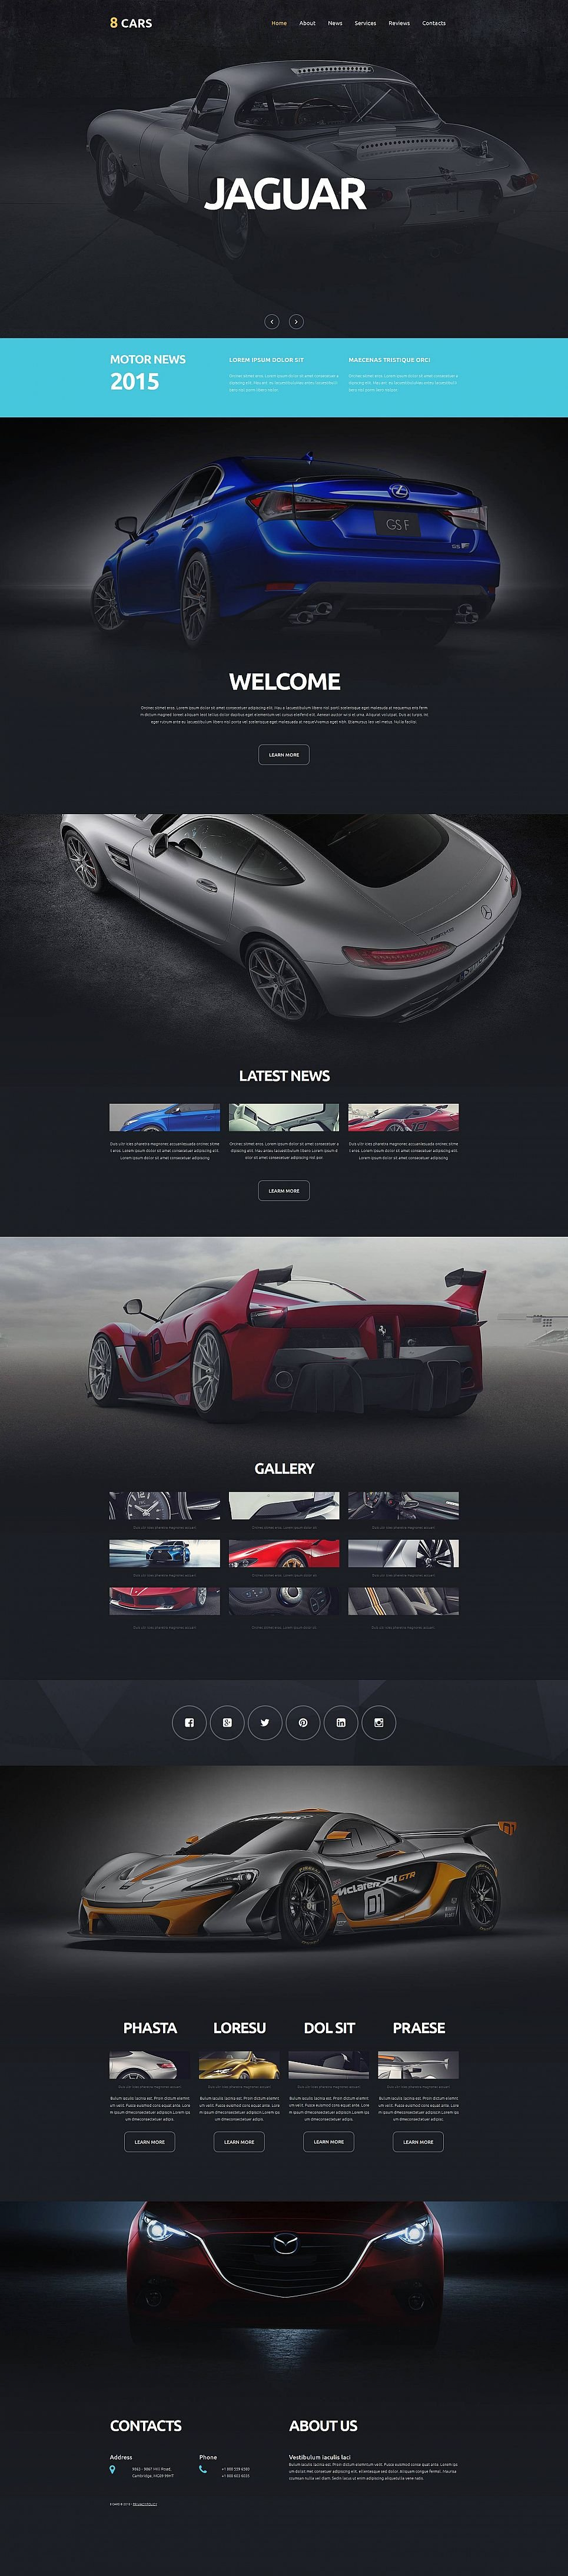 Car Buying Website Template - image